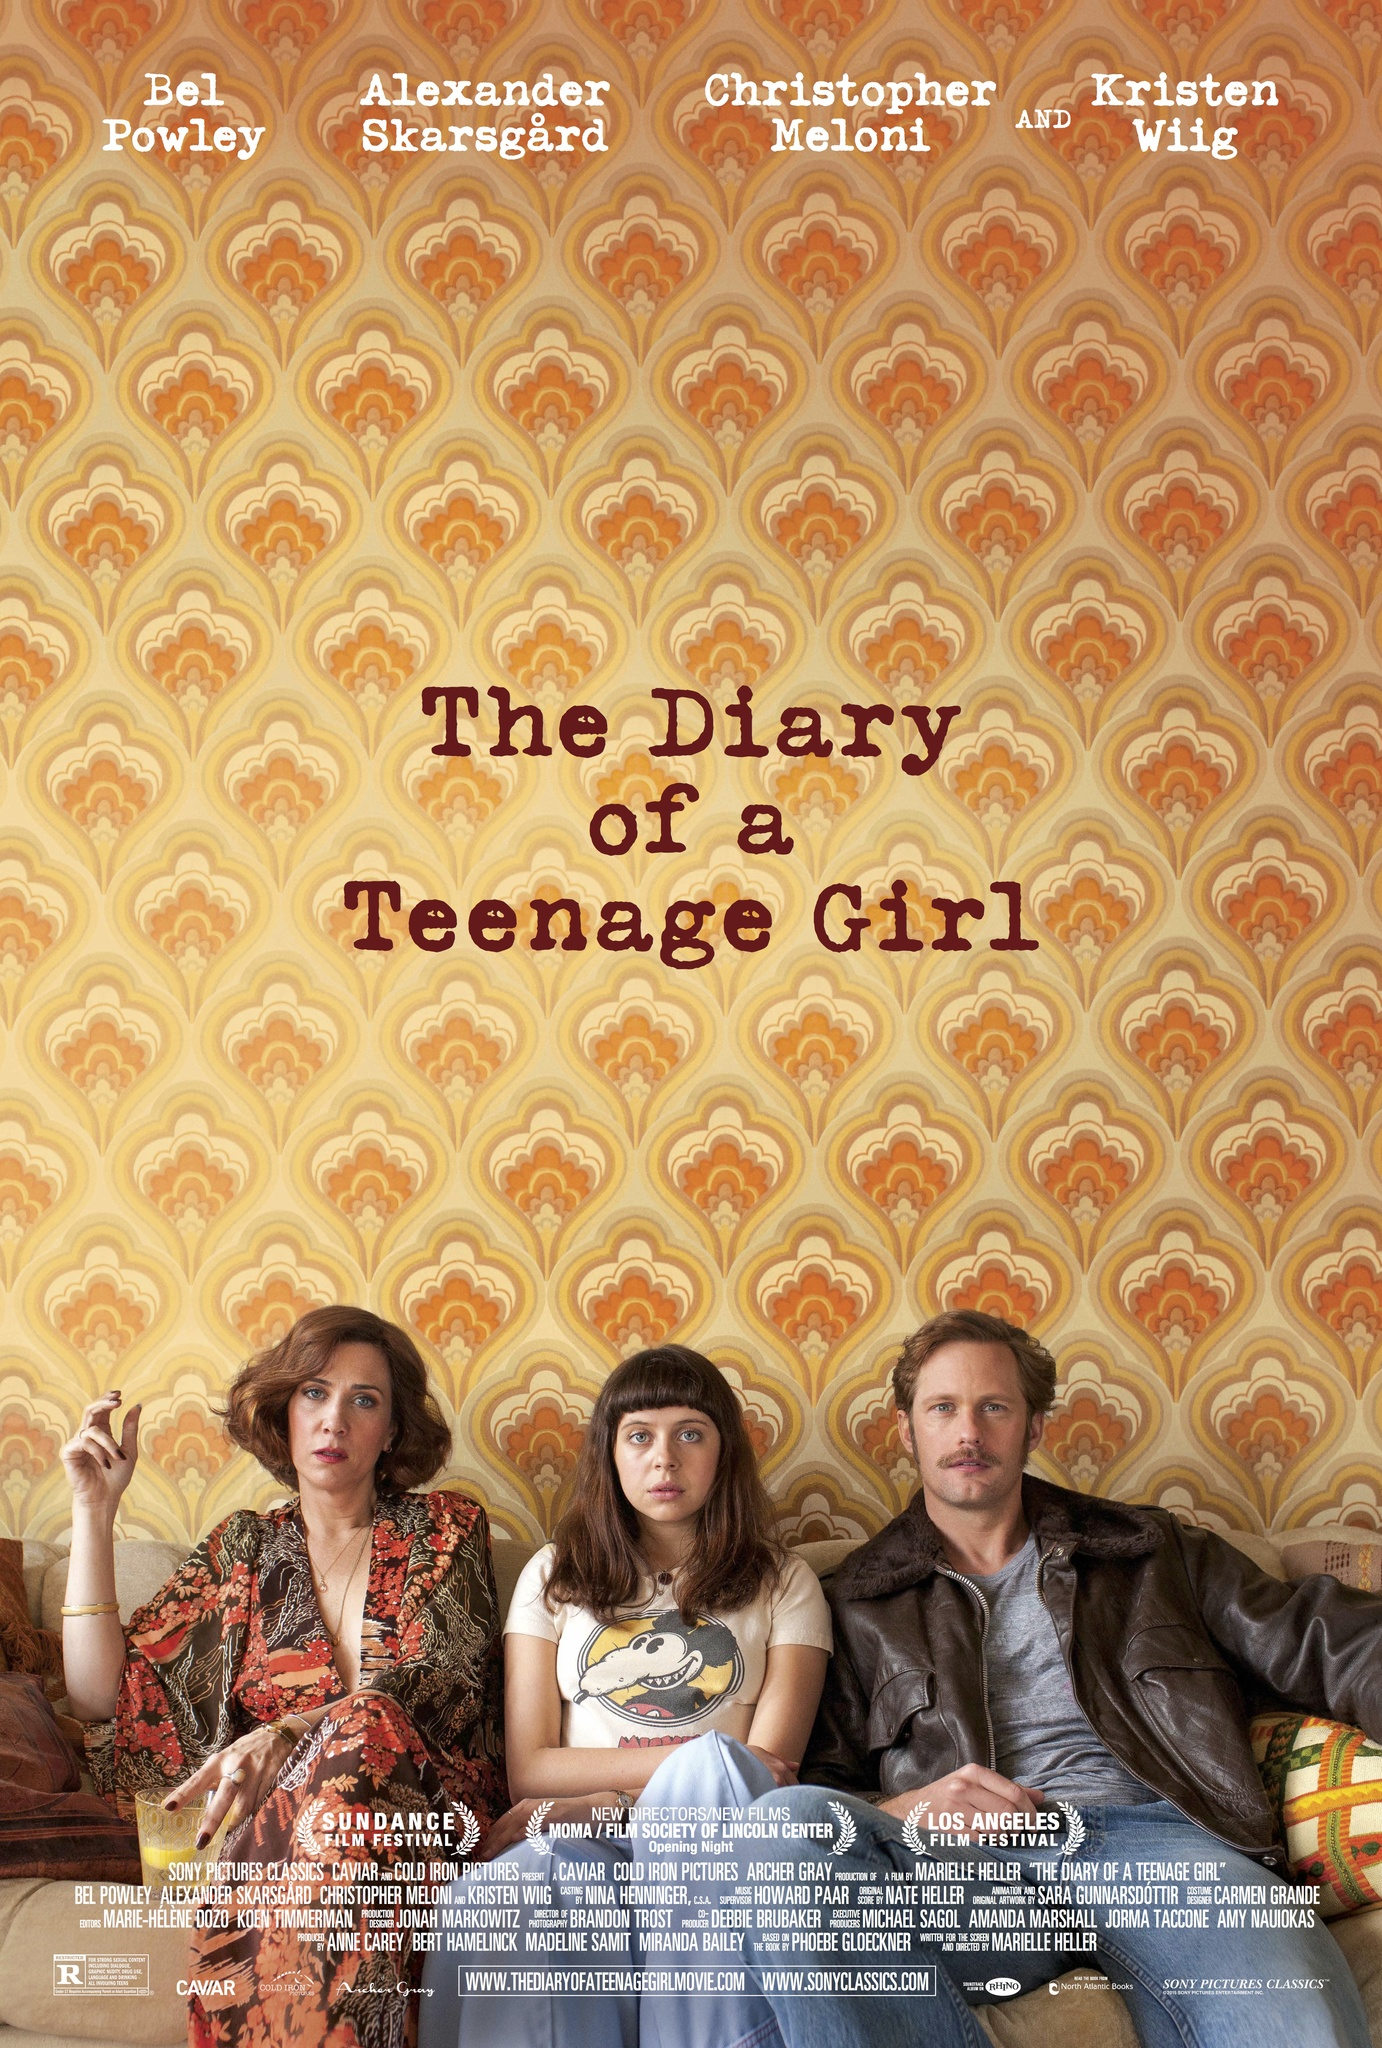 The Diary of a Teenage Girl (2015) - IMDb